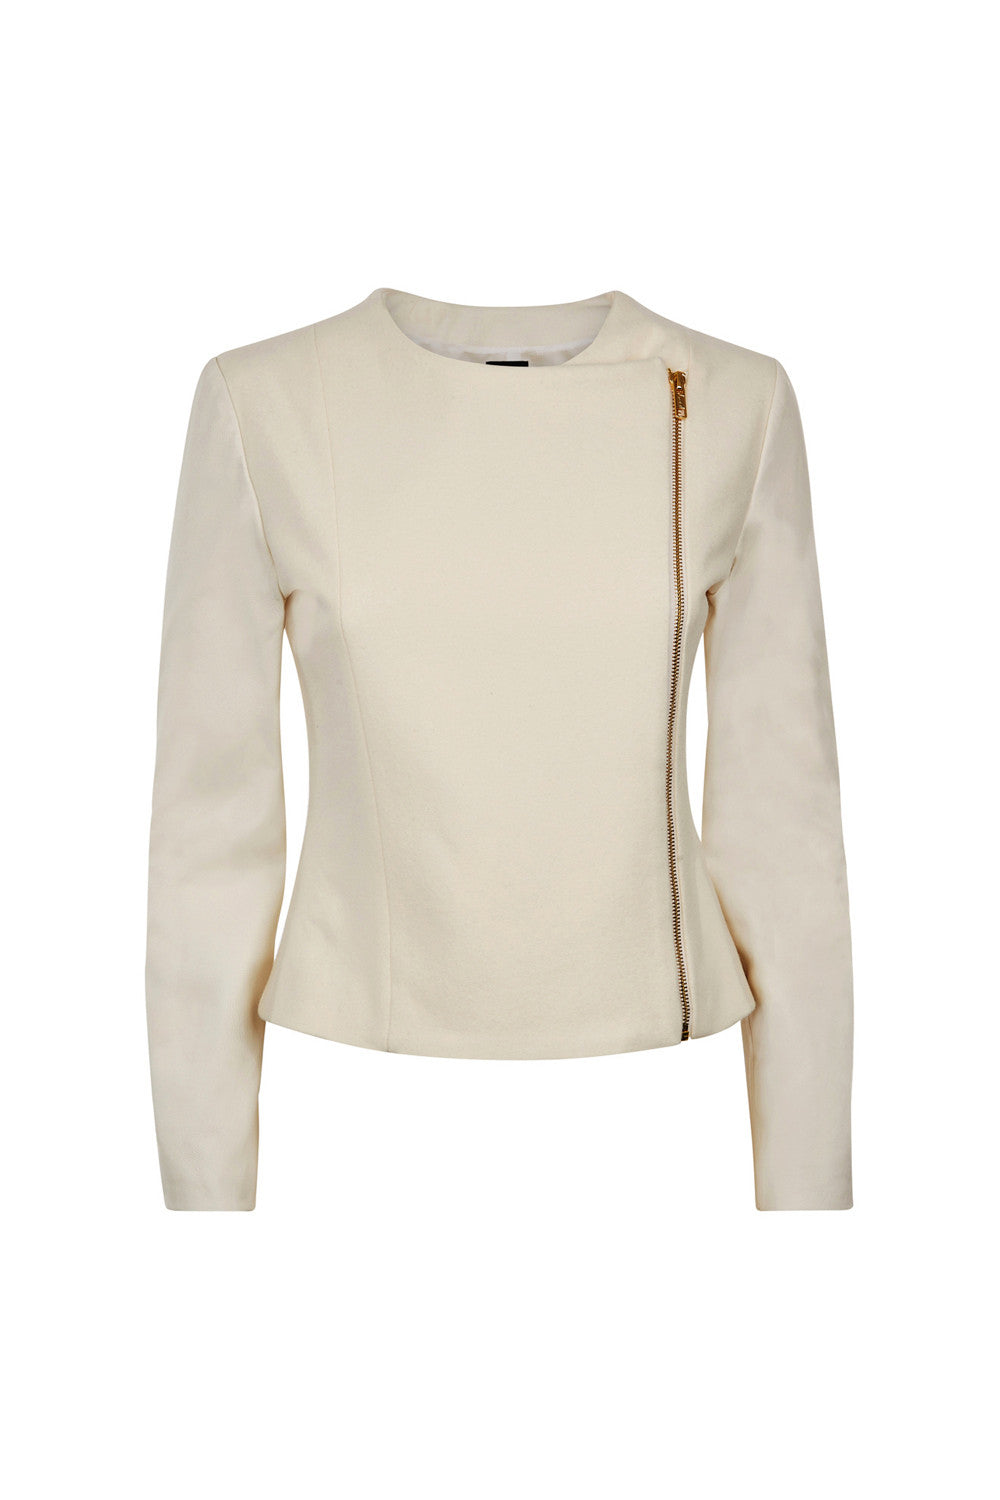 Gwen Jacket - Cream - Womenswear - Madderson London